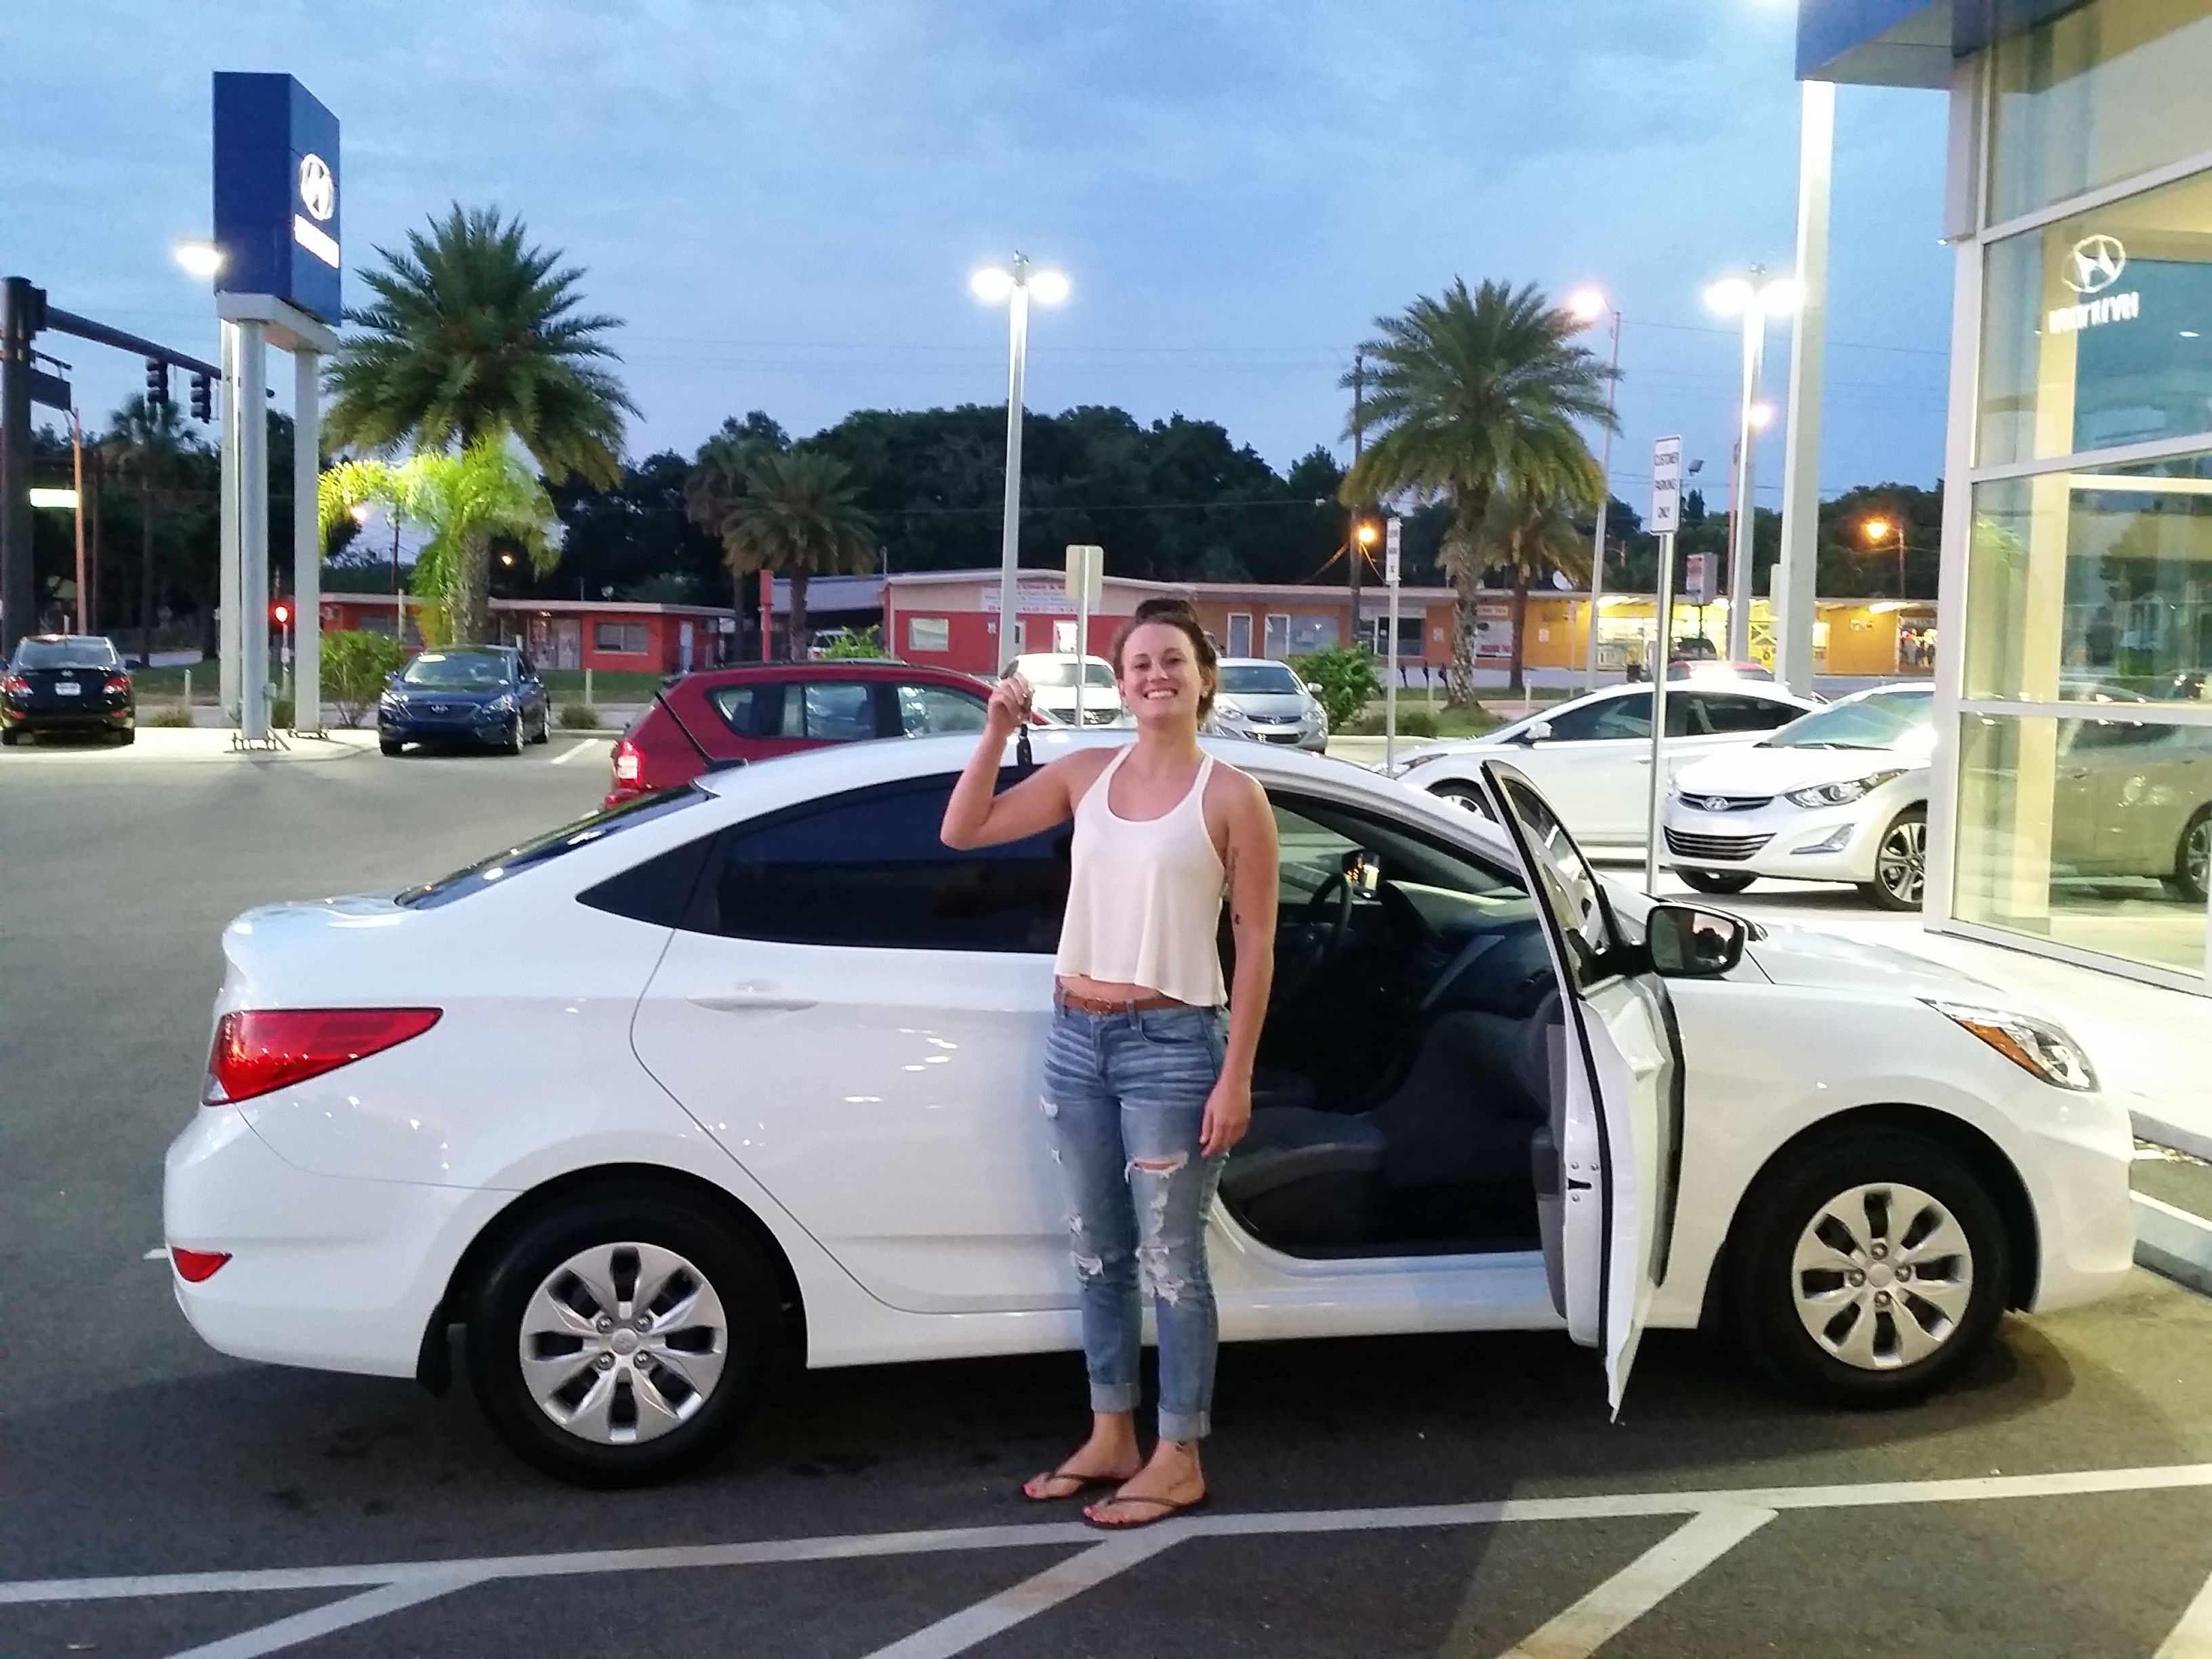 """Kayli, thank you for coming to Lakeland Hyundai to purchase your 2015 Hyundai Accent! Kayli worked with Kenny Swartz during this exceptional experience commenting that """"Kenny did an excellent job with us today! I am a VERY happy customer, all smiles :)"""" We hope you are enjoying your brand new Accent and please, if there's anything we can do, don't hesitate to ask... we're here to help! #LakelandAutomall #LakelandHyundai #HyundaiAccent #2015Accent #Hyundai"""